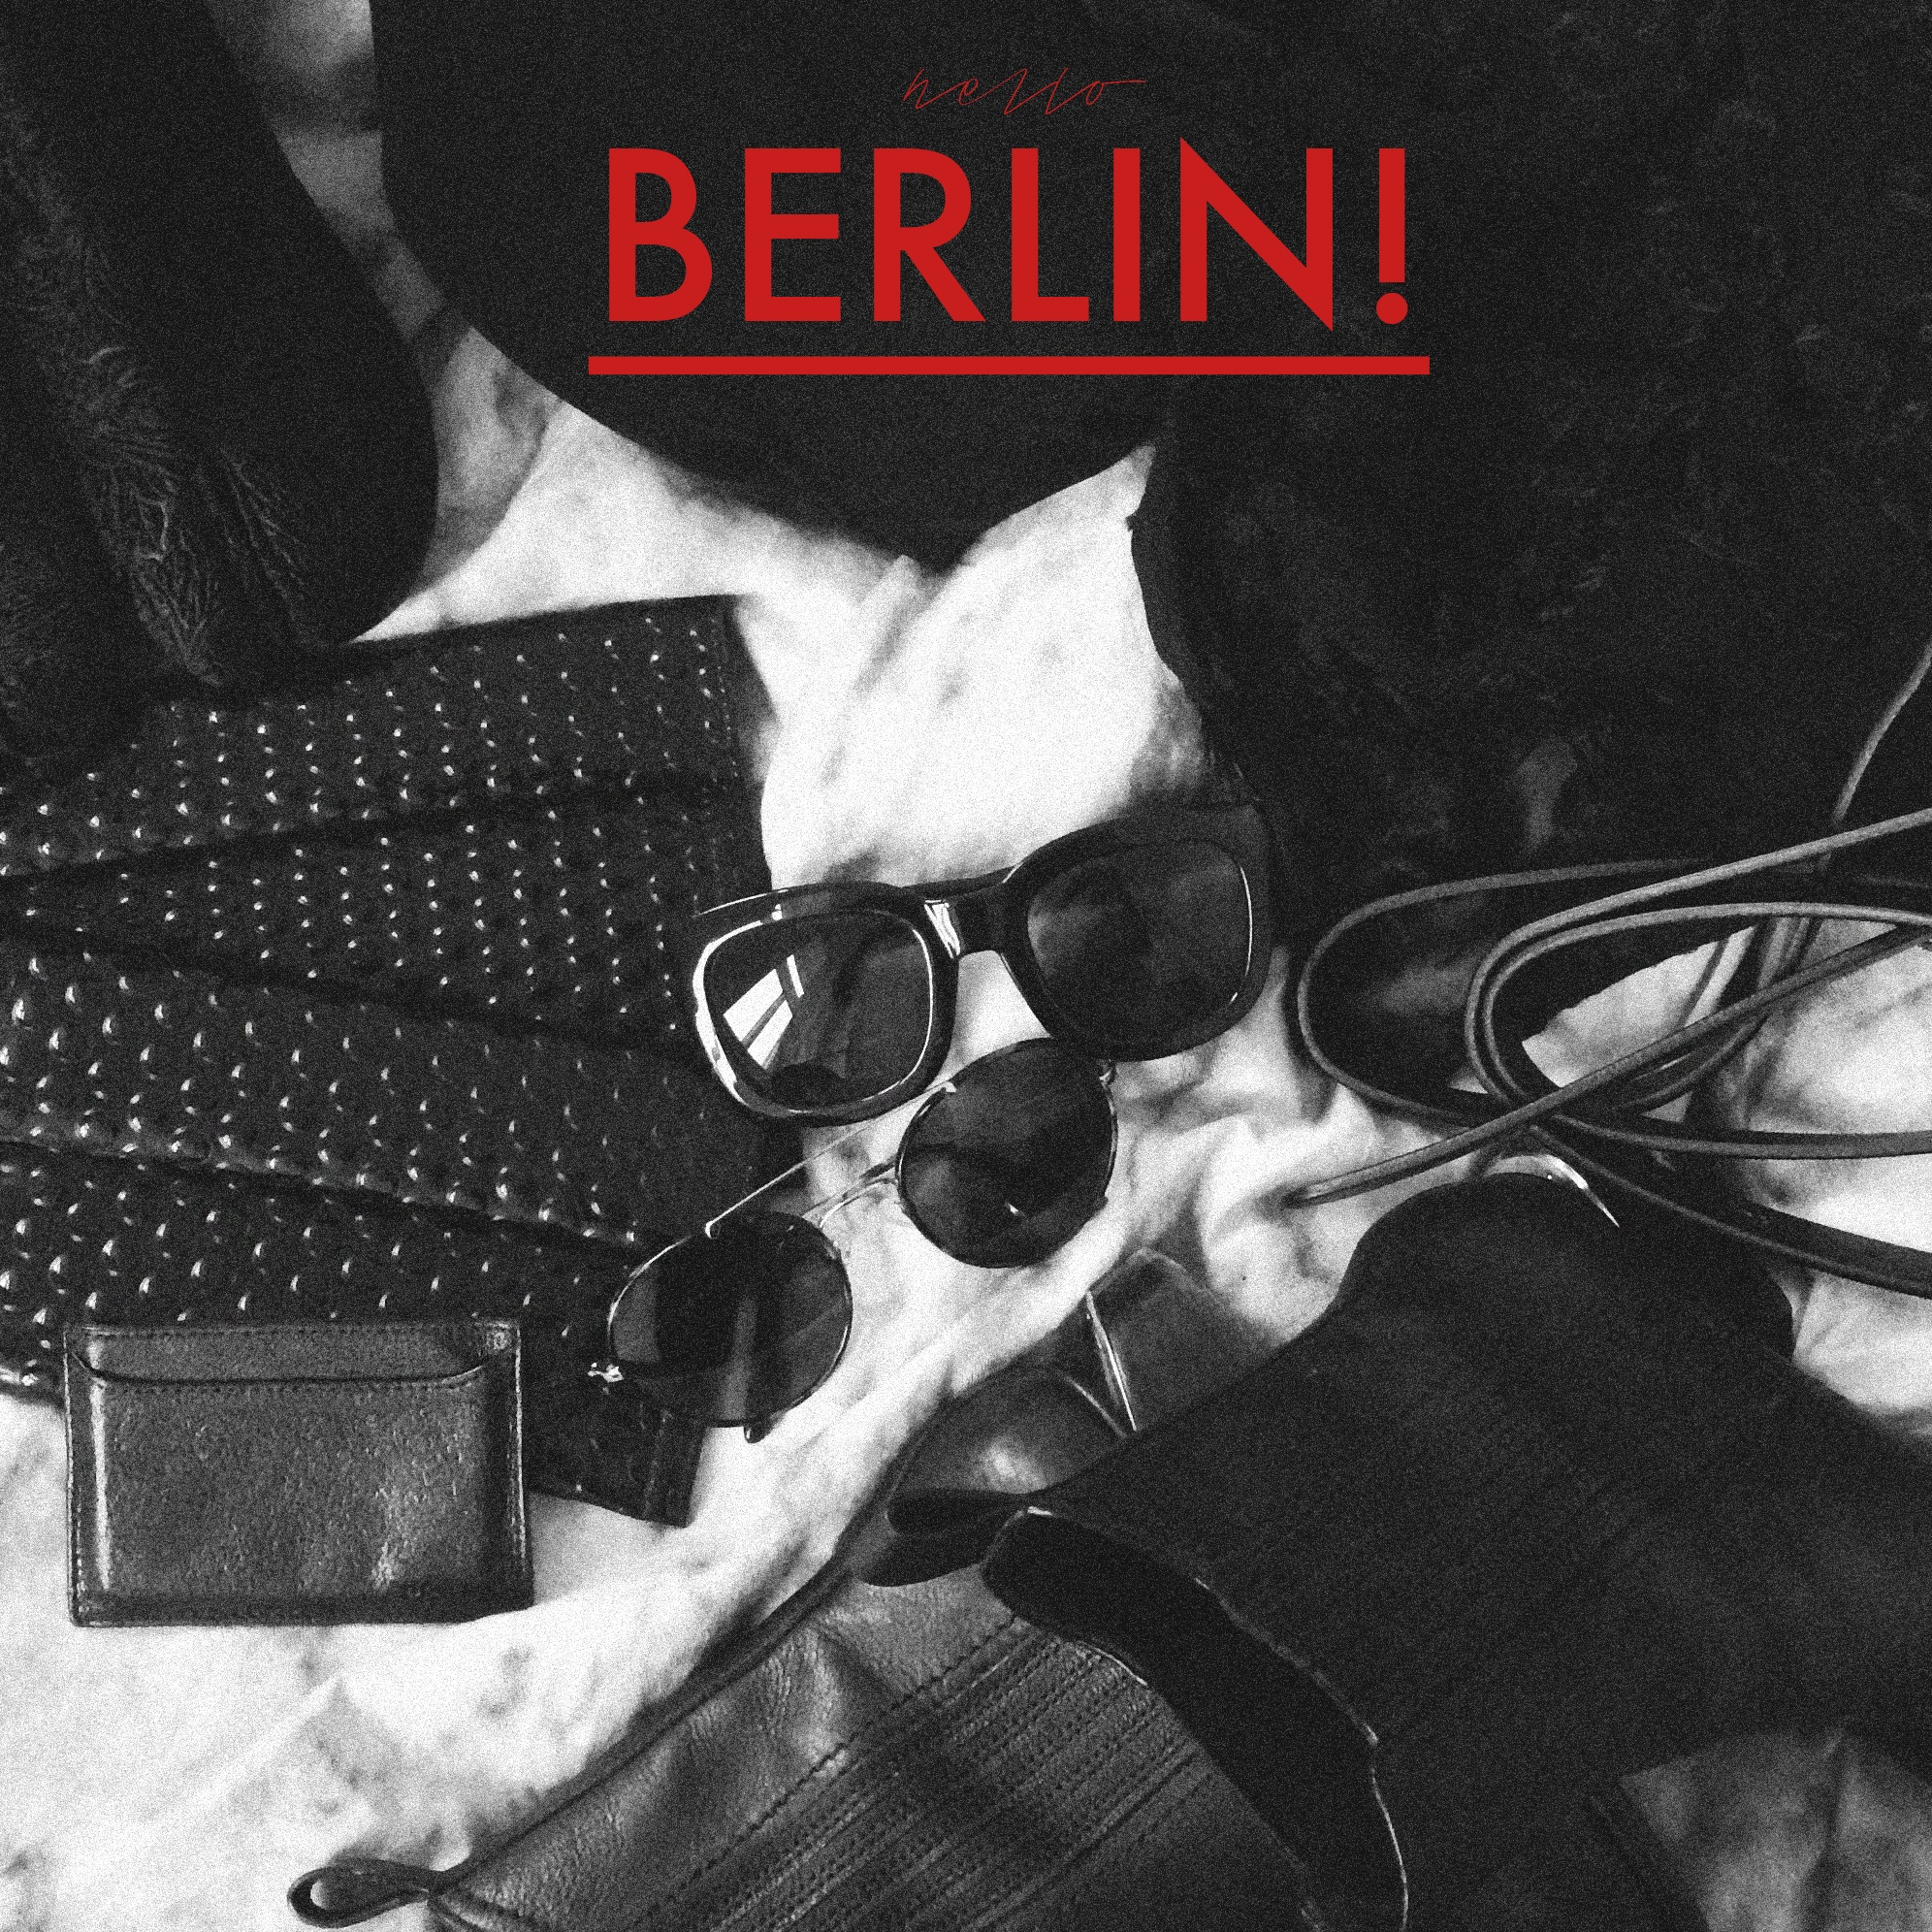 IHEARTALICE.DE – Fashion & Travel-Blog by Alice M. Huynh from Berlin/Germany: MBFW Berlin / Fashion Week Berlin - Berliner Modesalon / Fashion Week